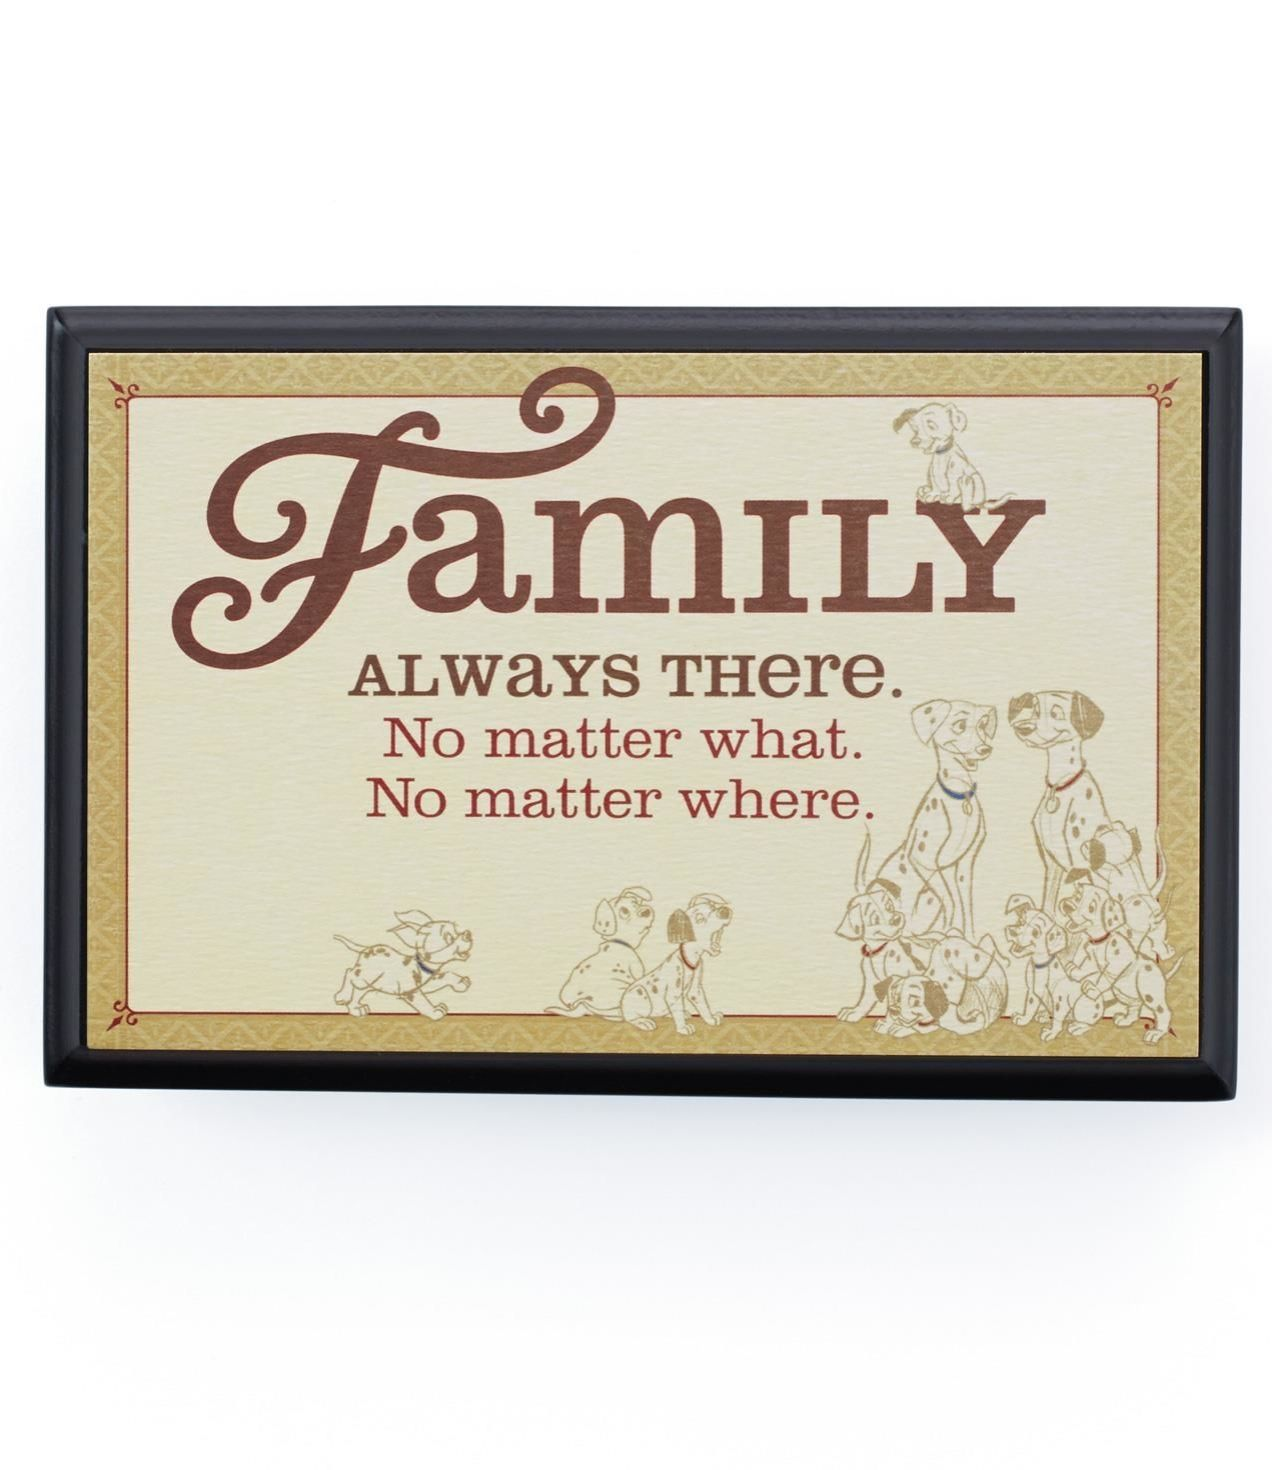 Disney Quote Plaques: Family Quote From The 101 Dalmatians